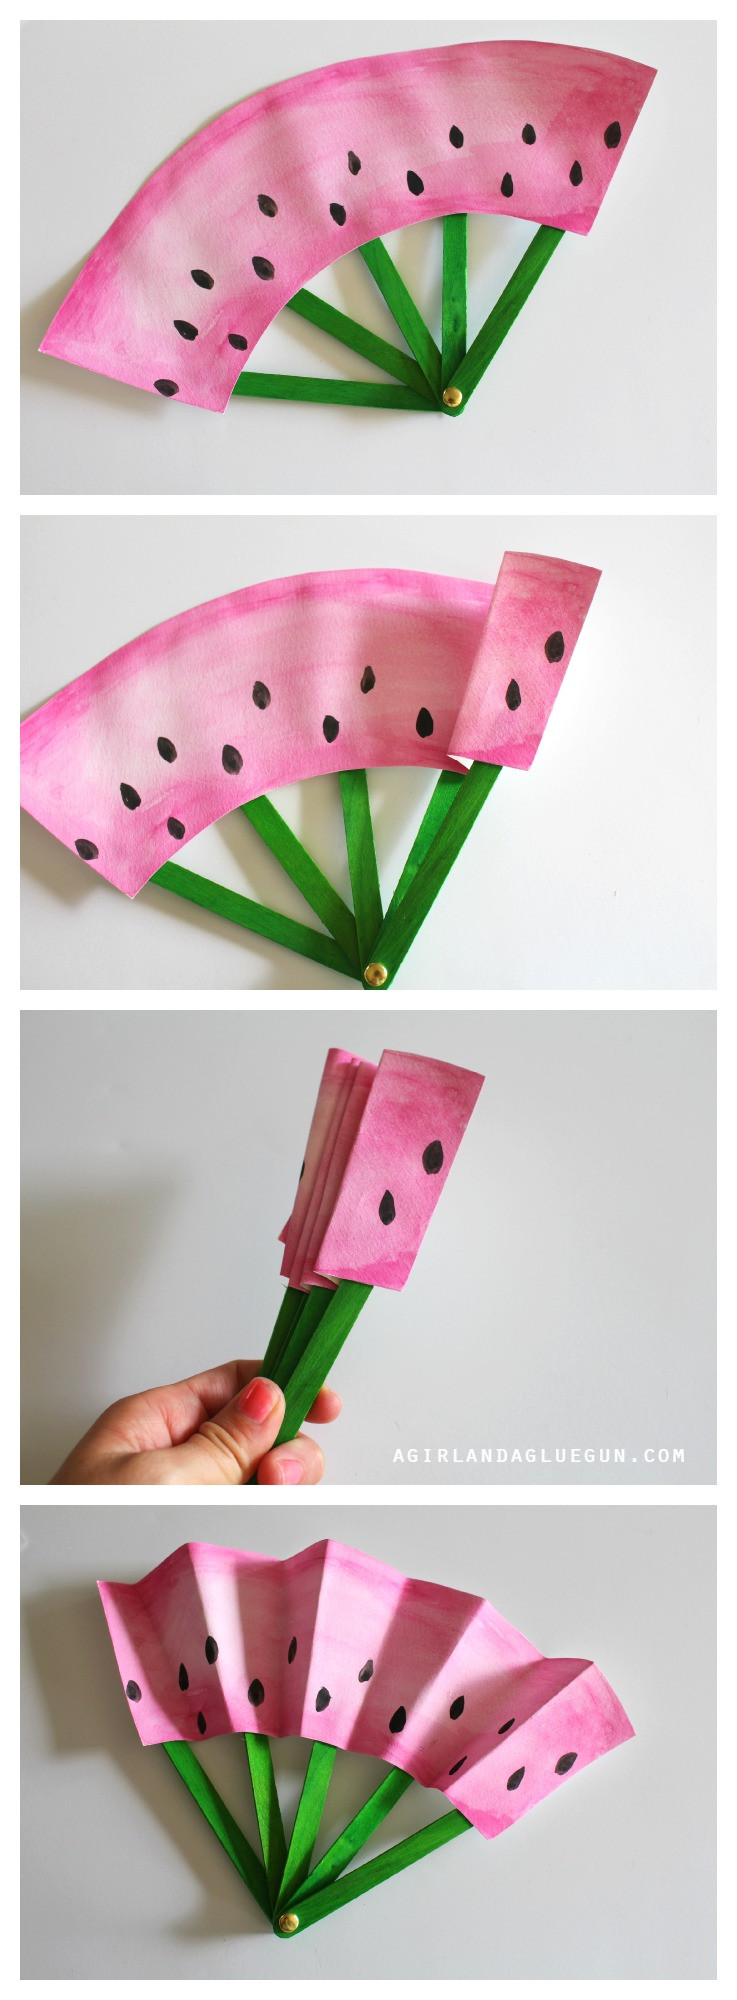 Best ideas about Cool Arts And Crafts For Kids . Save or Pin DIY Fruit Fans Kids Craft The Idea Room Now.